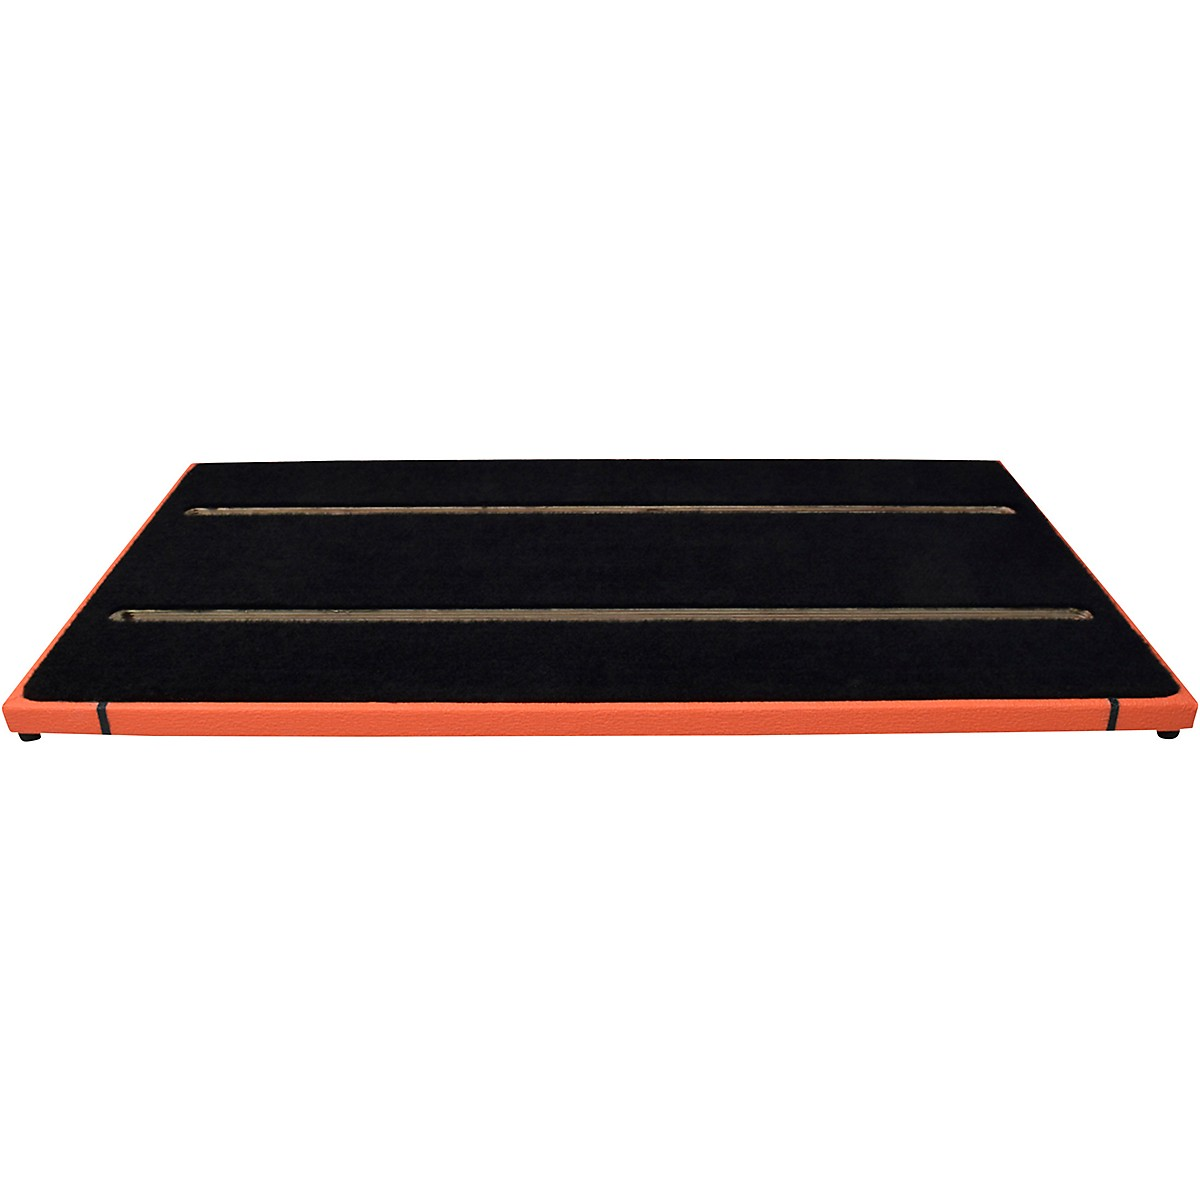 Ruach Music Orange Tolex 4 Pedalboard